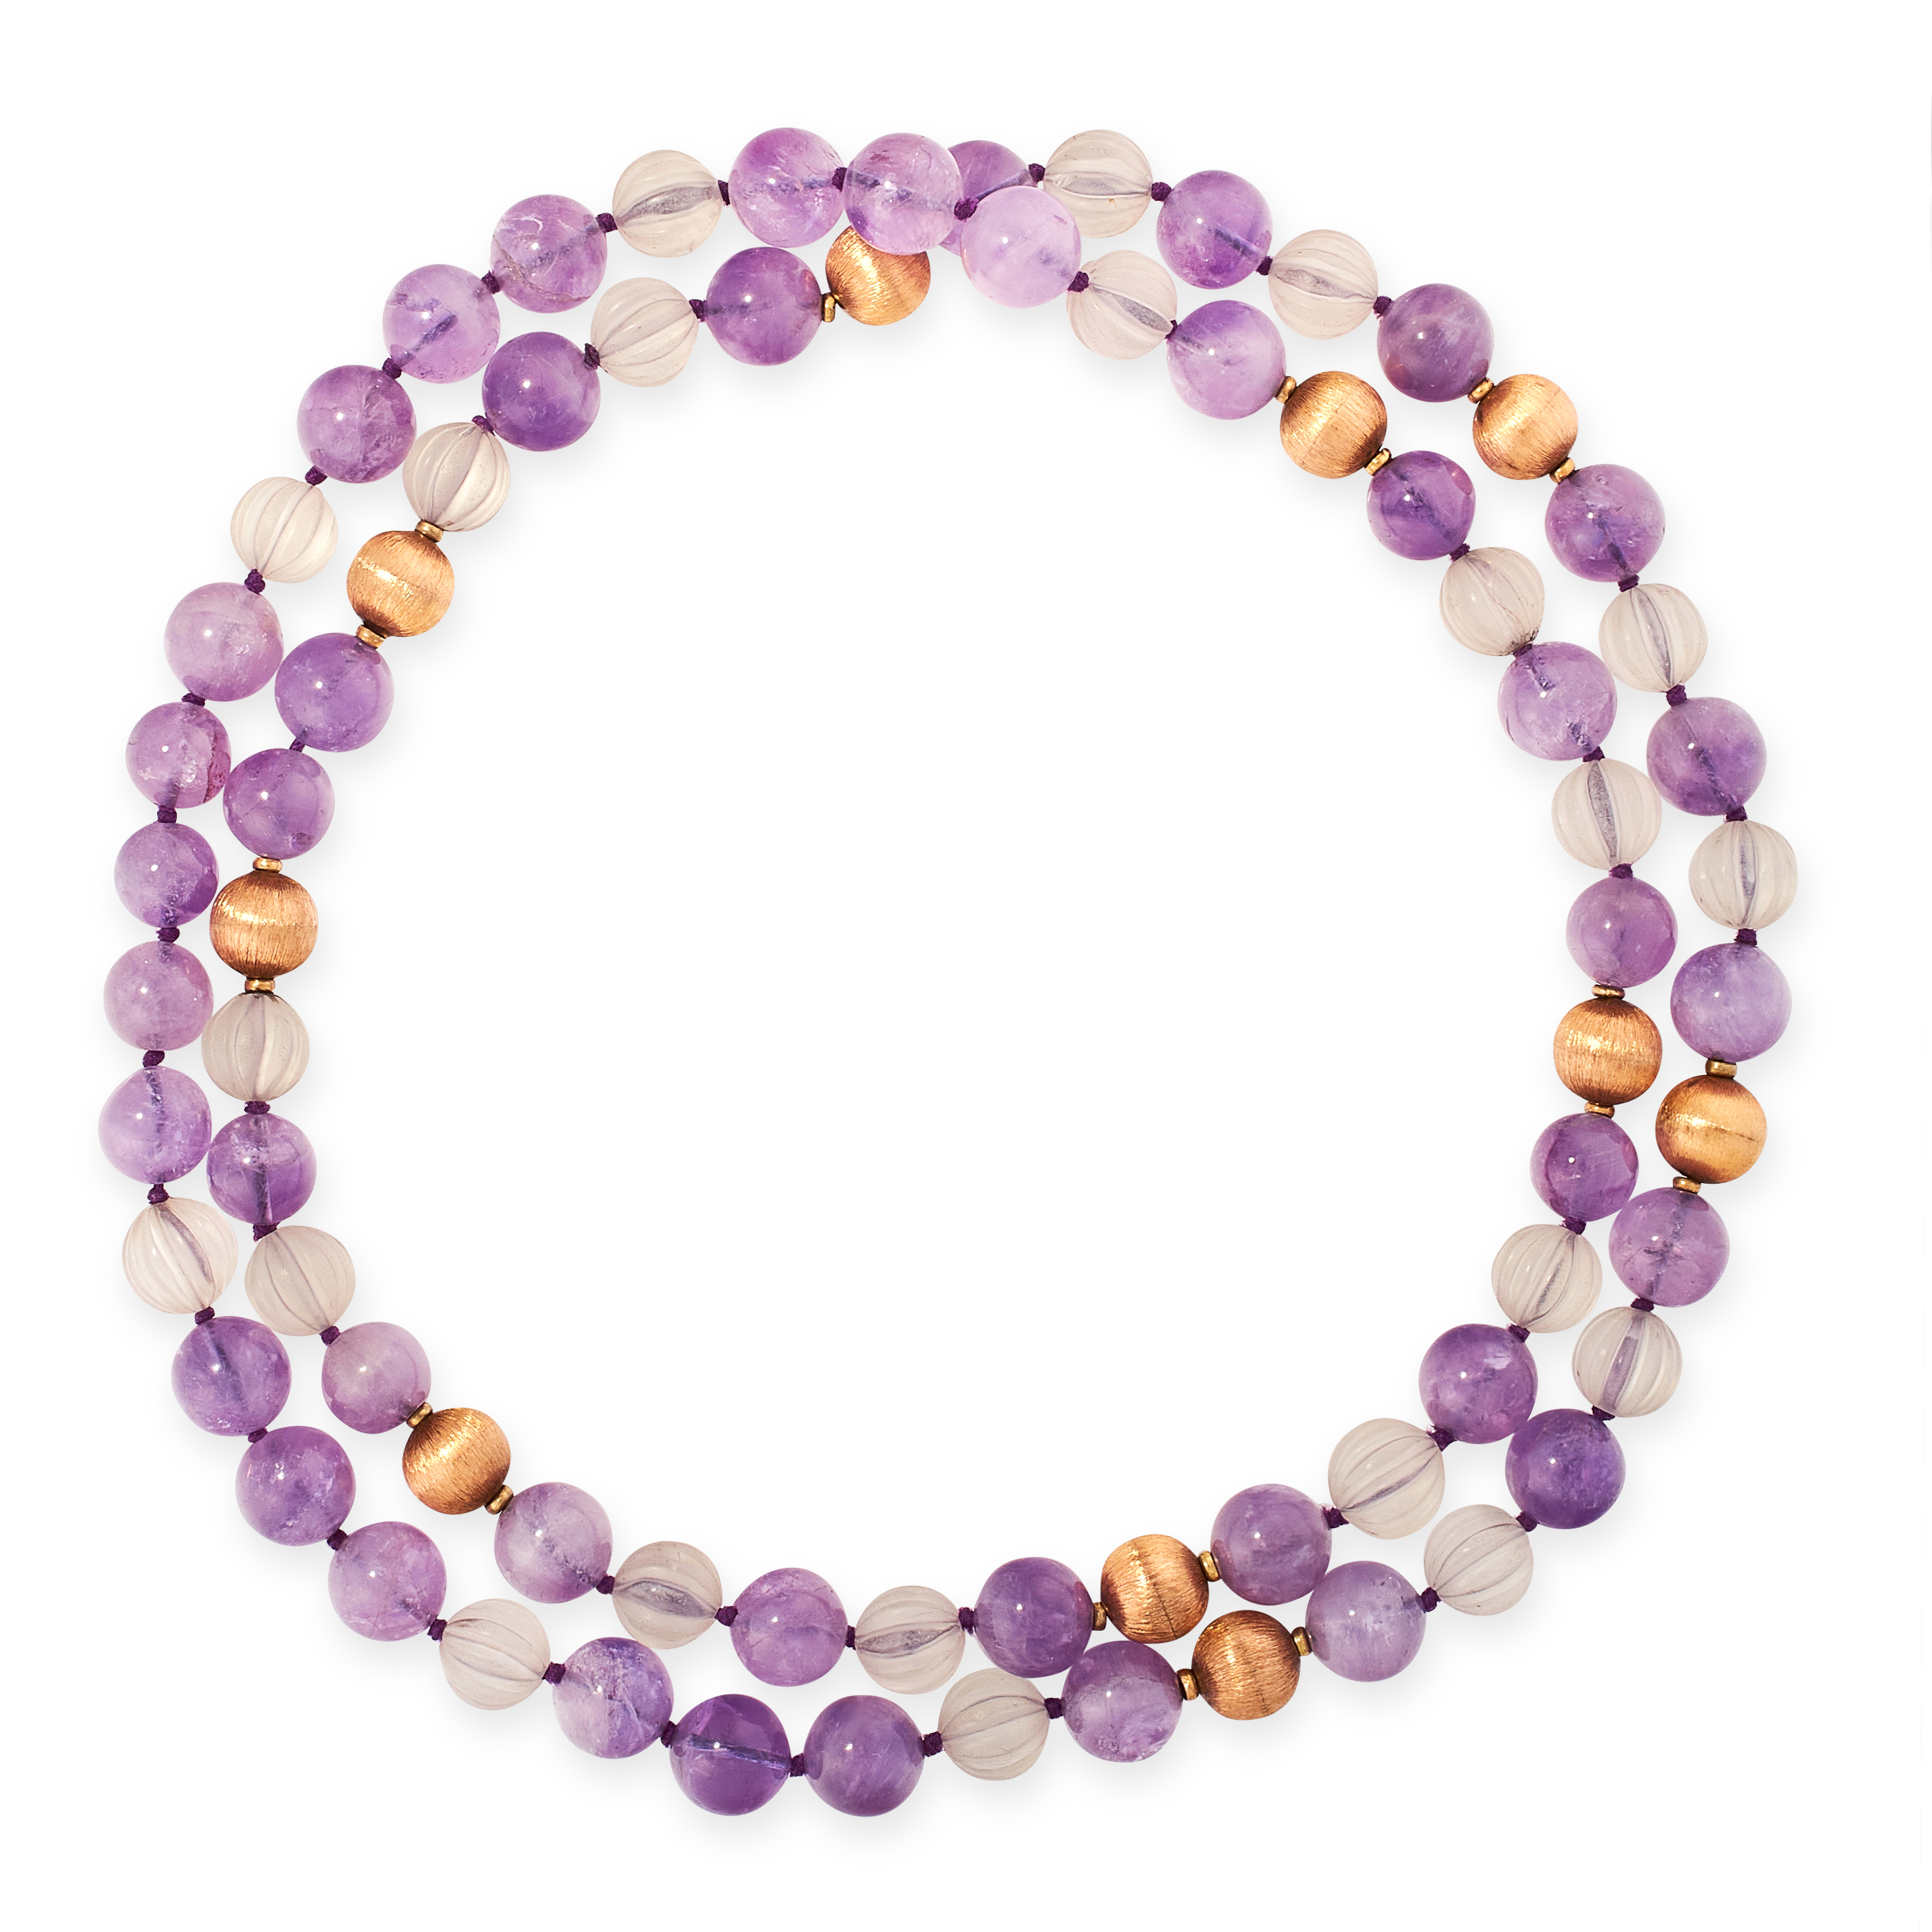 AN AMETHYST AND ROCK CRYSTAL BEAD NECKLACE in yellow gold, comprising a single row of polished